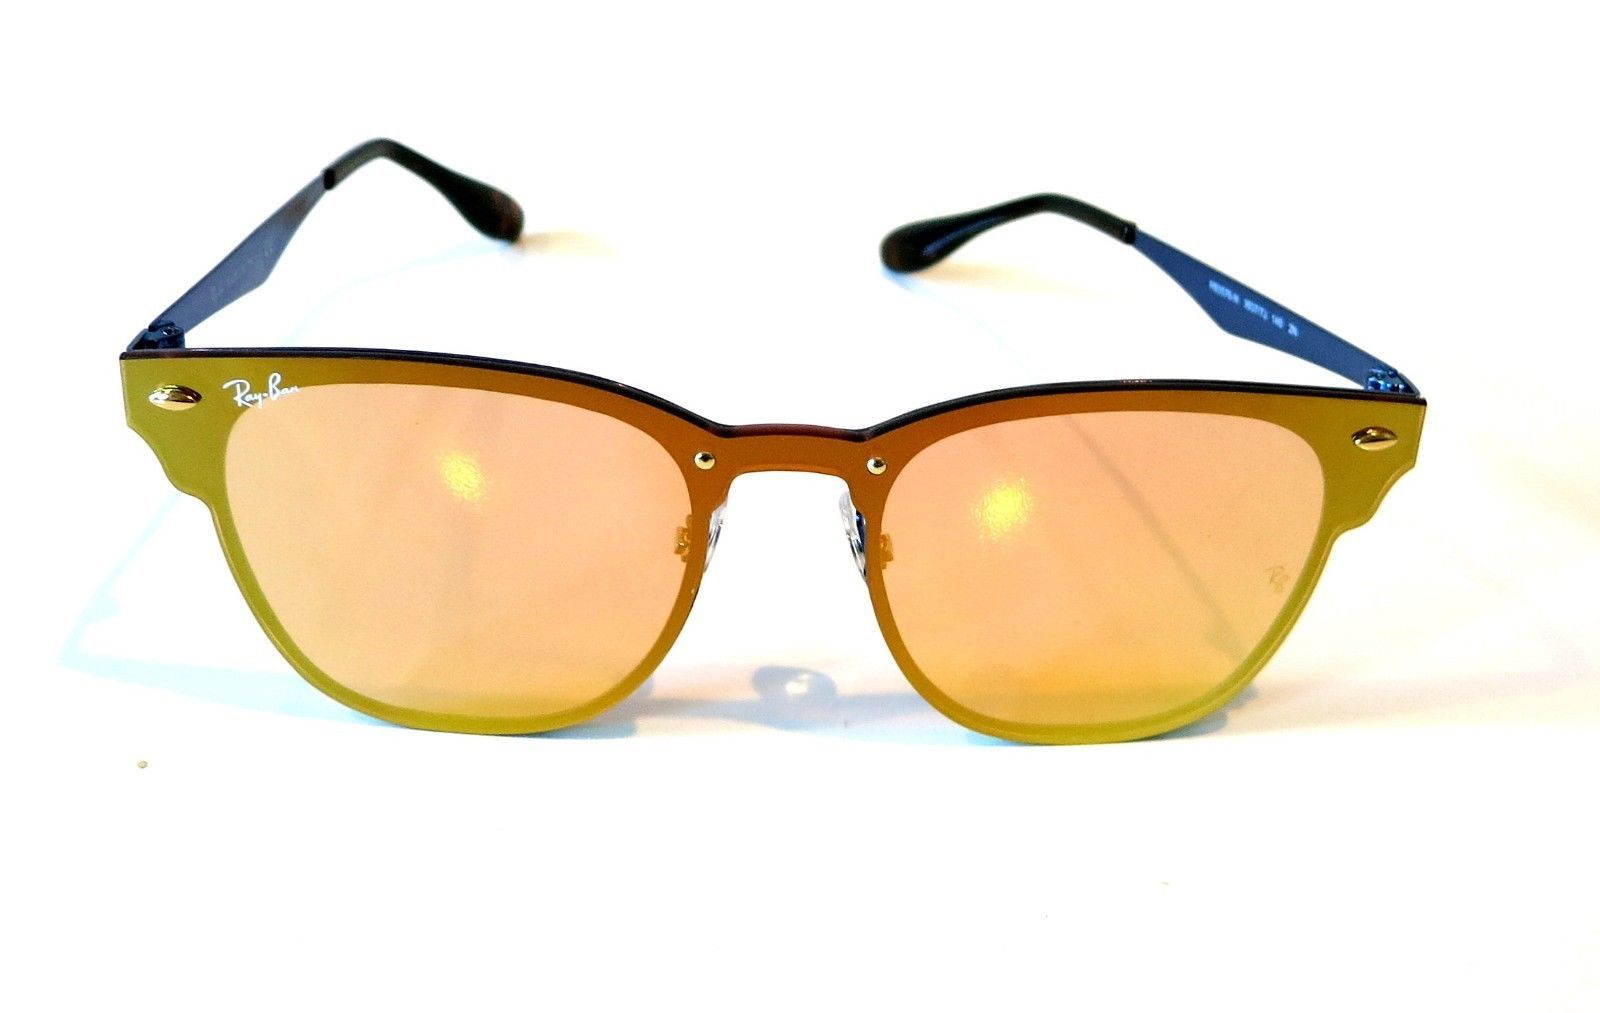 342d8e7ee4 Rayban Blaze Clubmaster sunglasses RB3576N 9037 7J Blue Orange Yellow 3576  Club